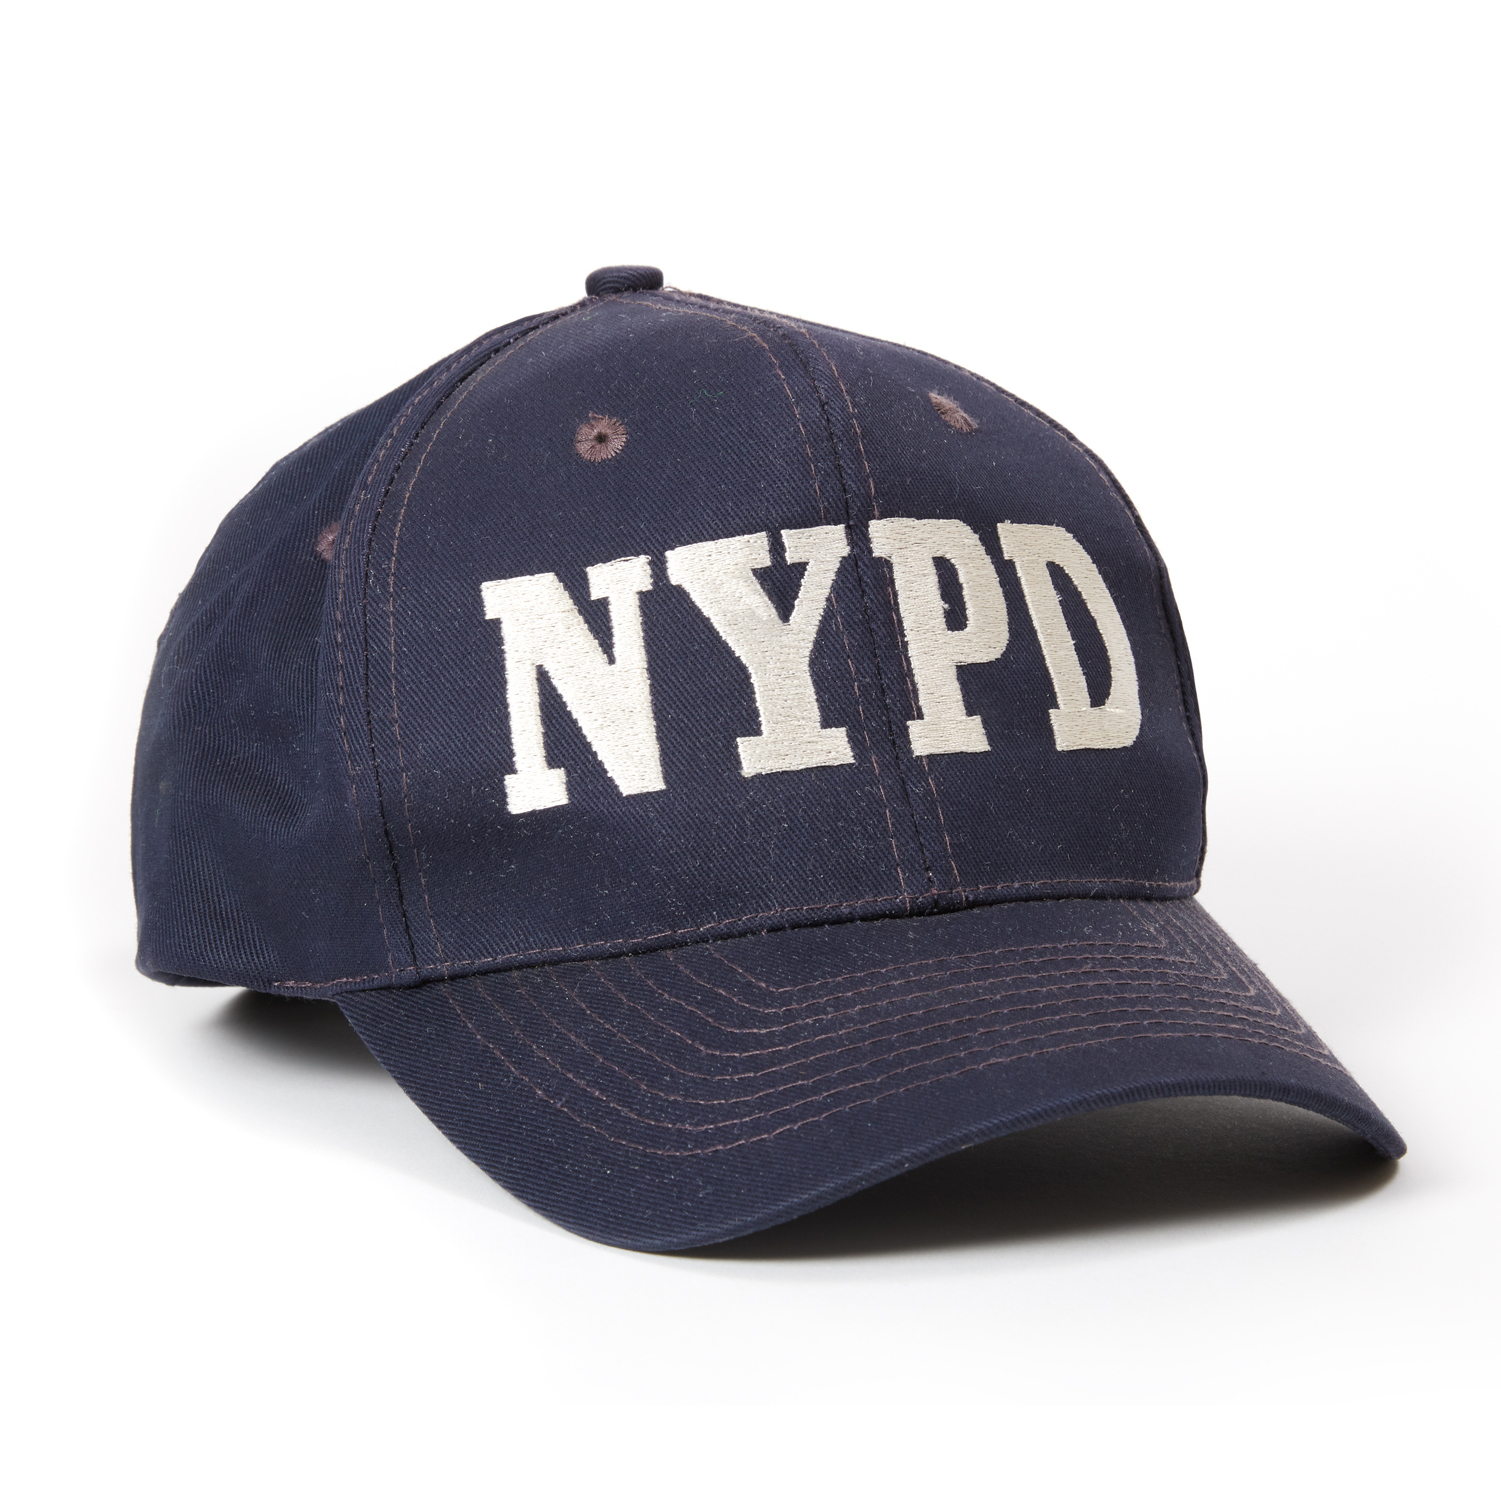 nypd-hat